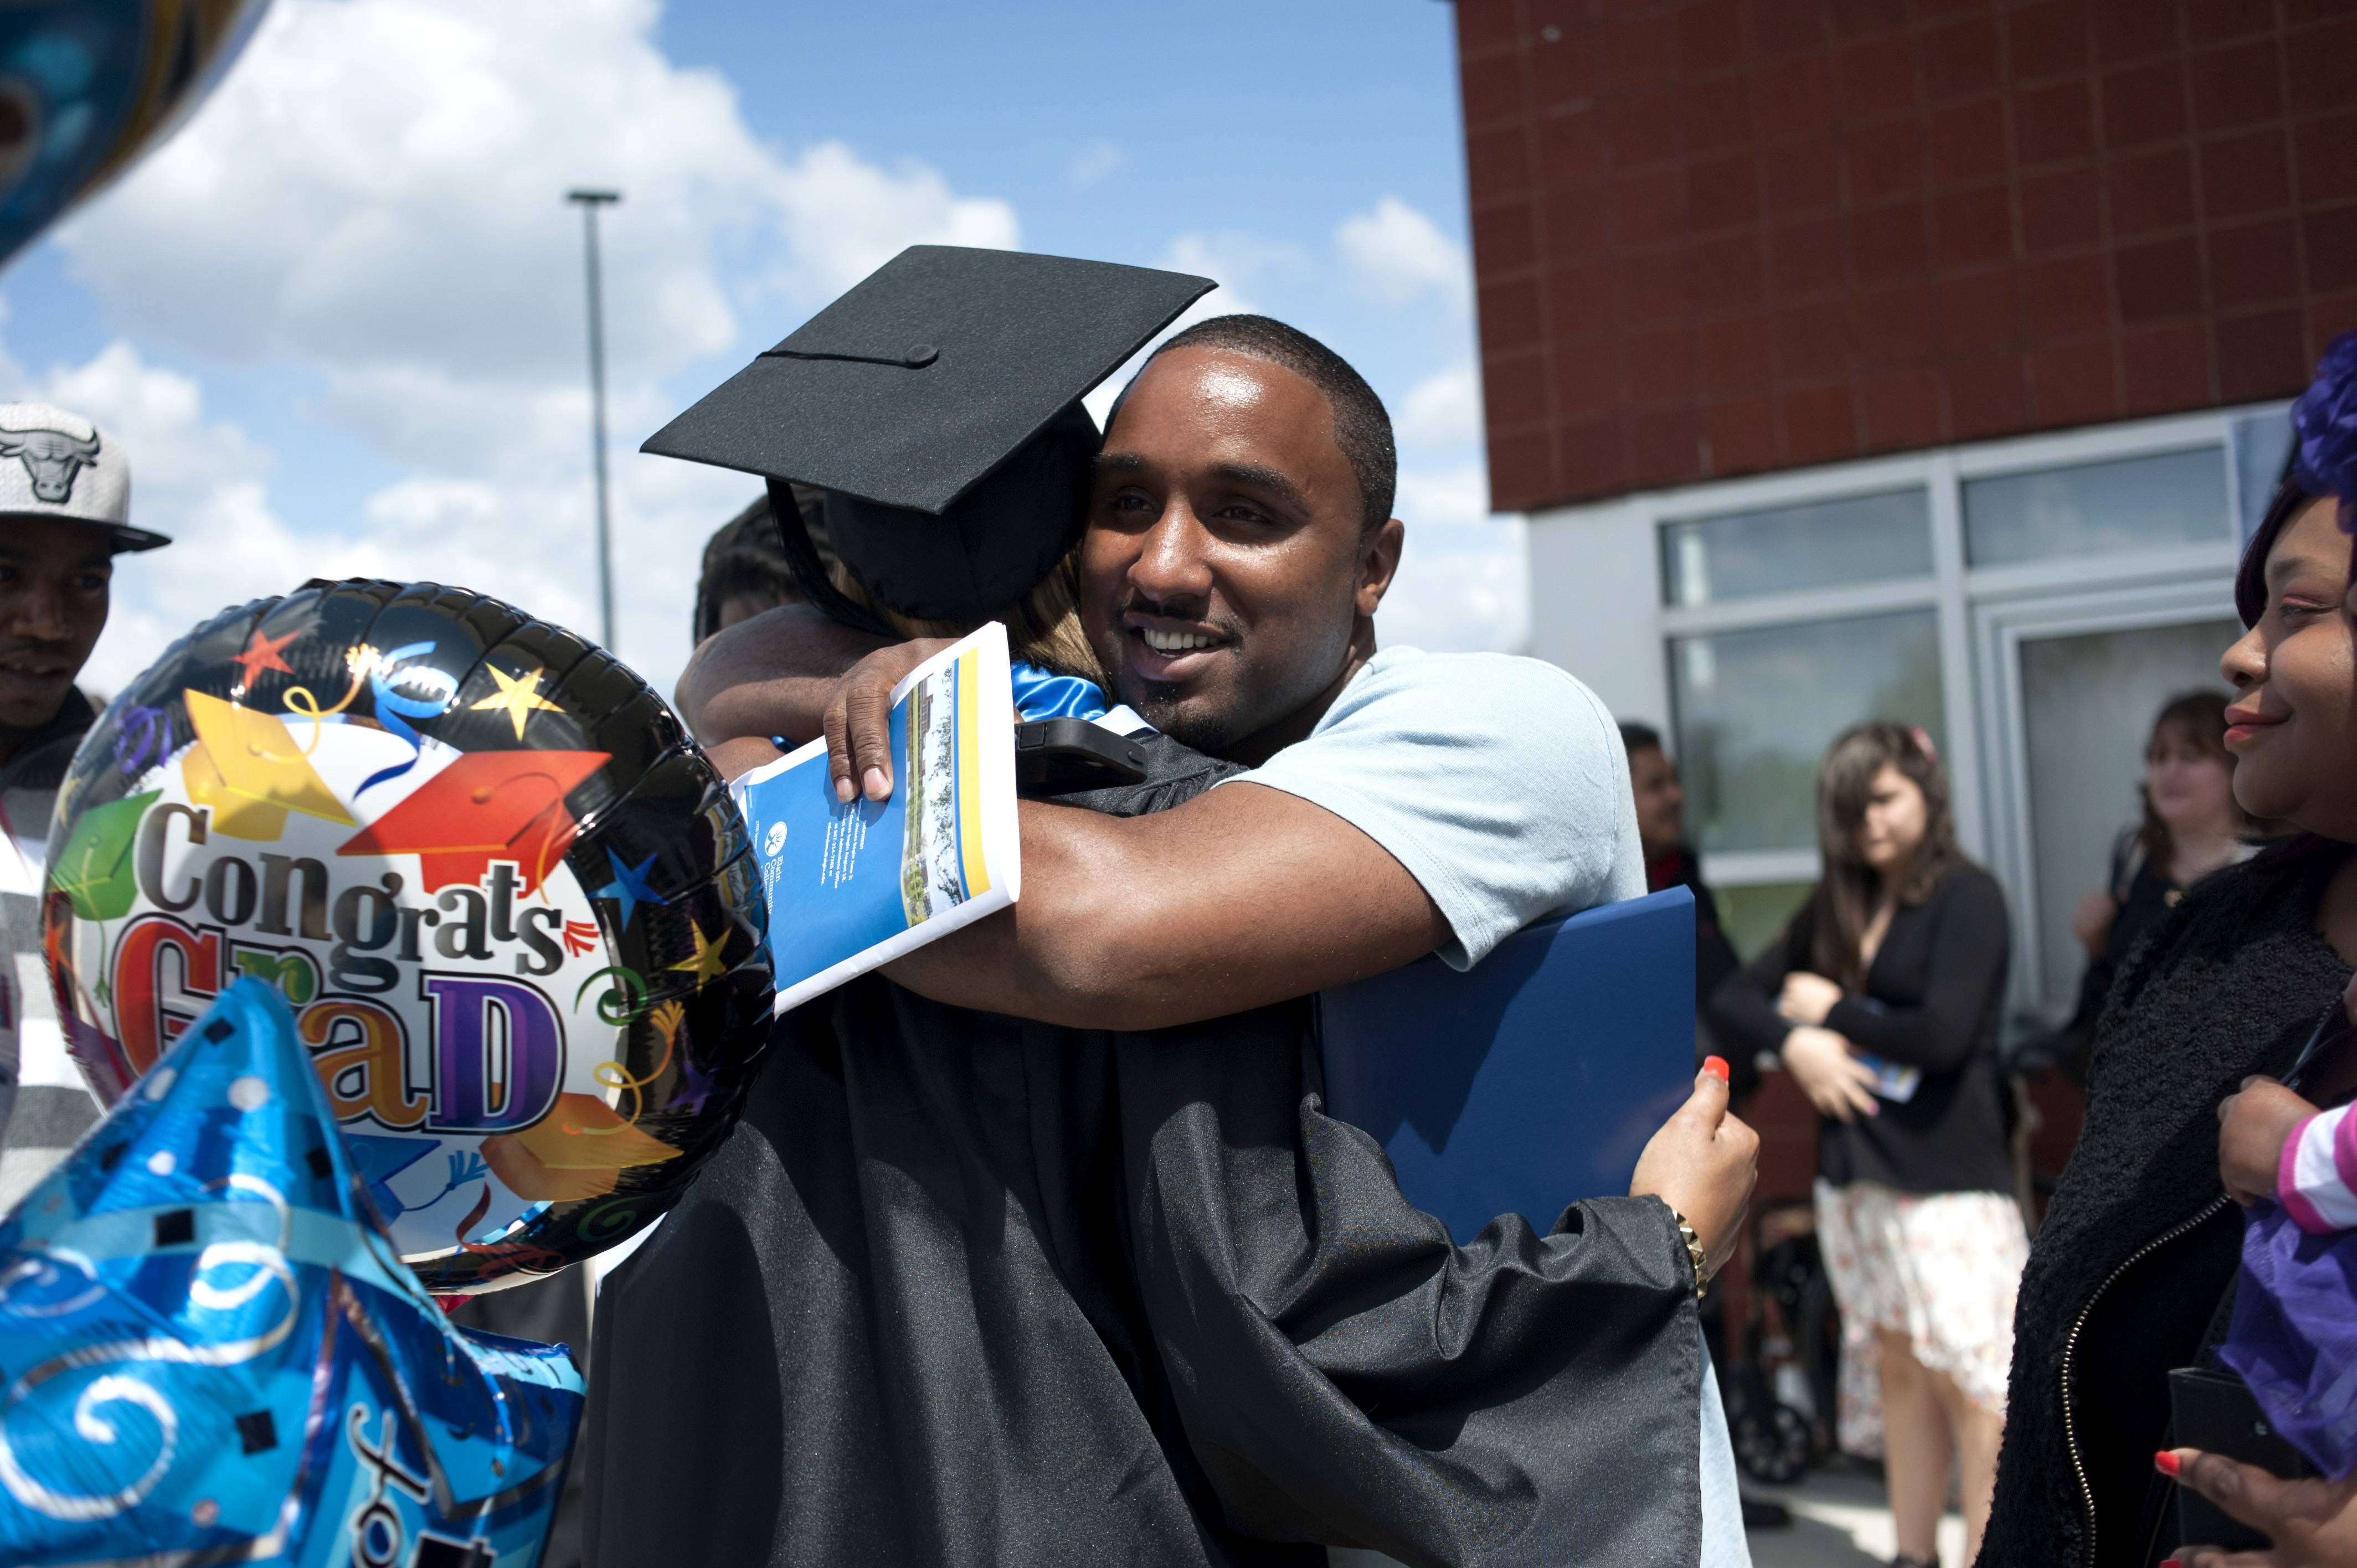 Stefan Sellers hugs his sister Candace after the Elgin Community College commencement outside the Spartan Events Center on Saturday. Sellers earned an associate in arts degree.